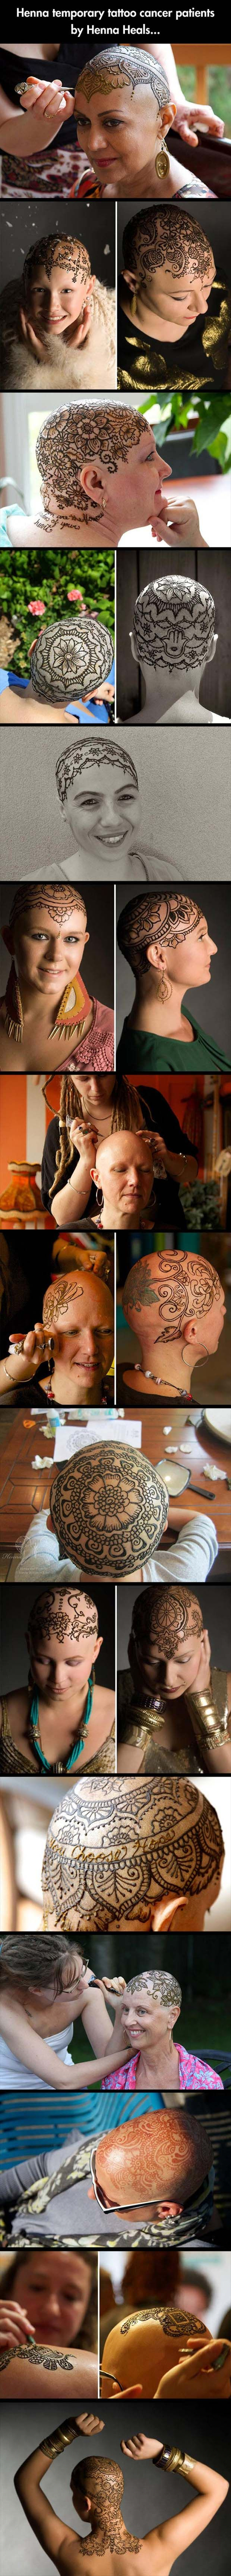 Amazing Henna For Cancer Patients - 14 Pics If you like this then check out the Home Decor at designsbynn.com